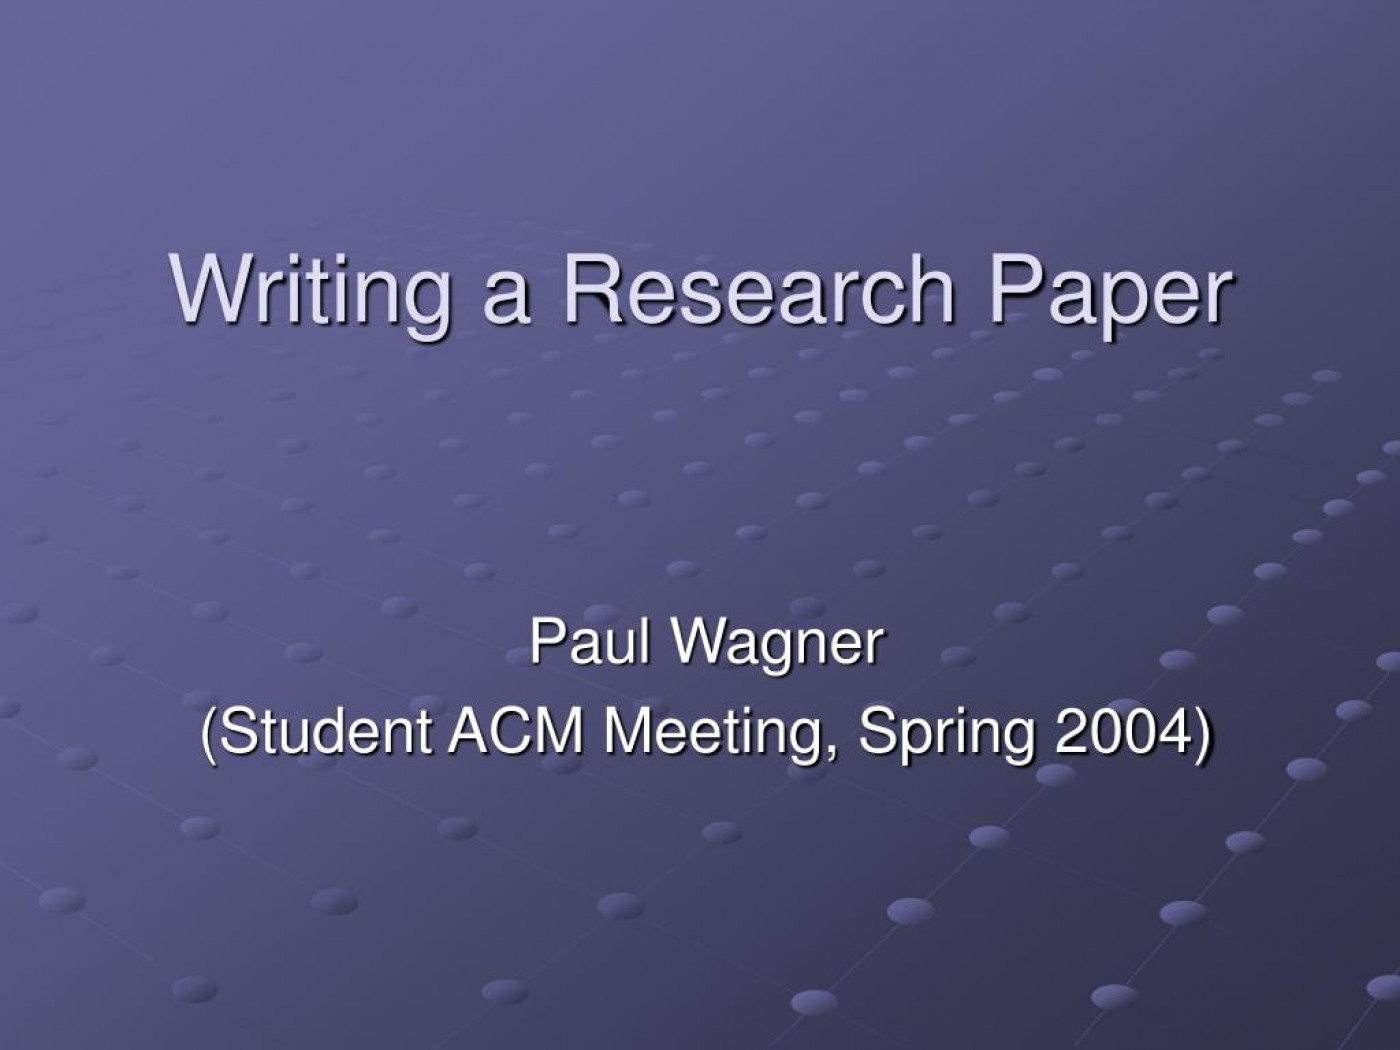 005 Writing Research Paper L How To Write Powerpoint Awesome A Presentation 1400